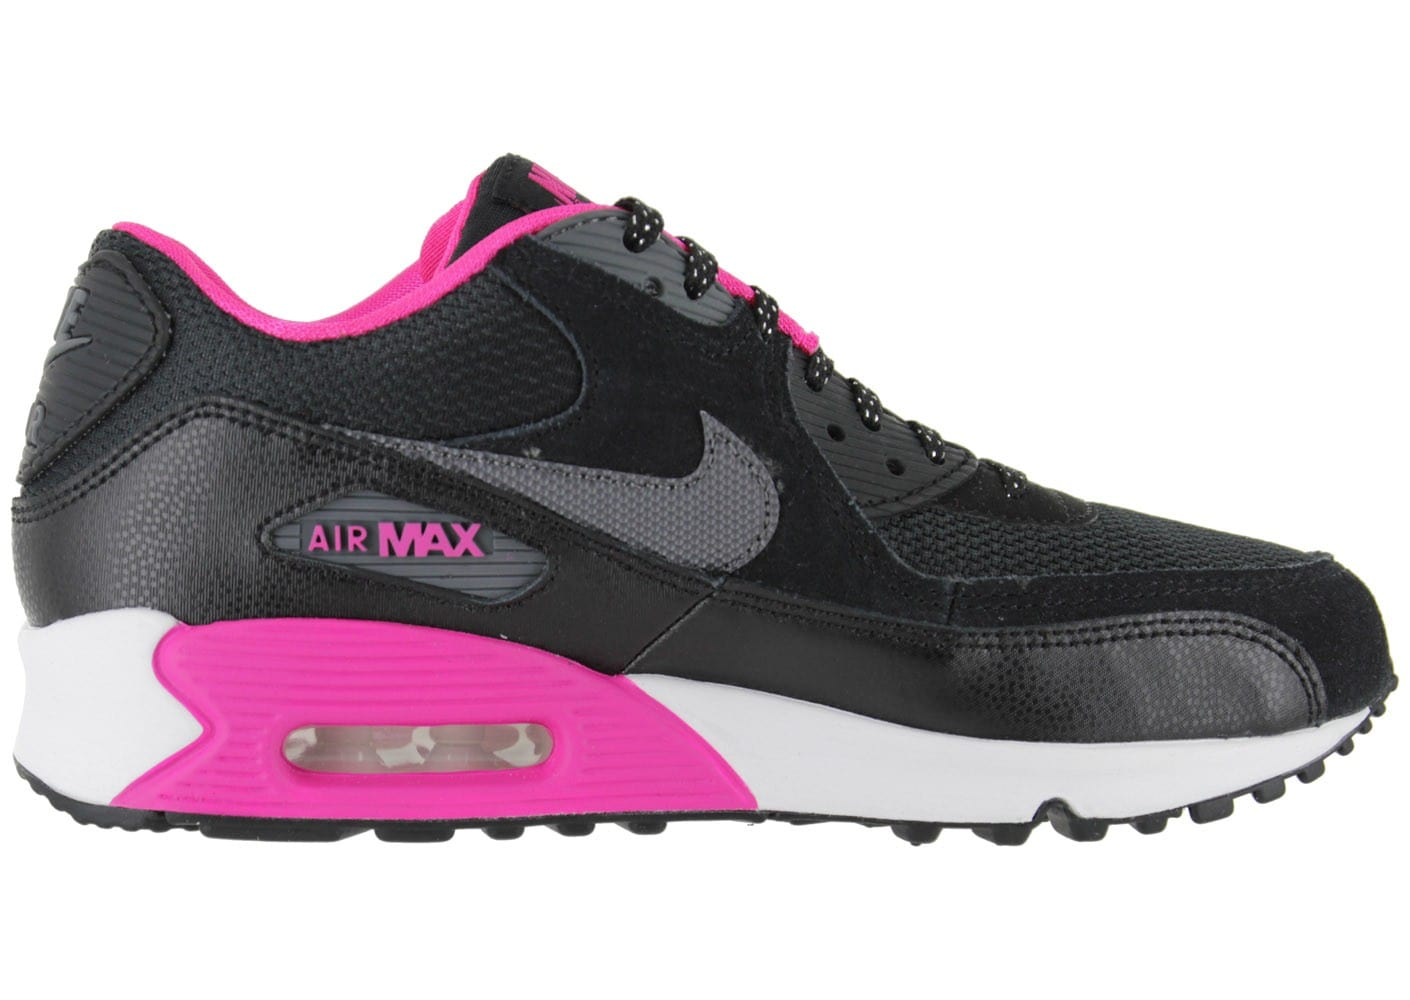 nike air max 90 junior noire chaussures chaussures chausport. Black Bedroom Furniture Sets. Home Design Ideas